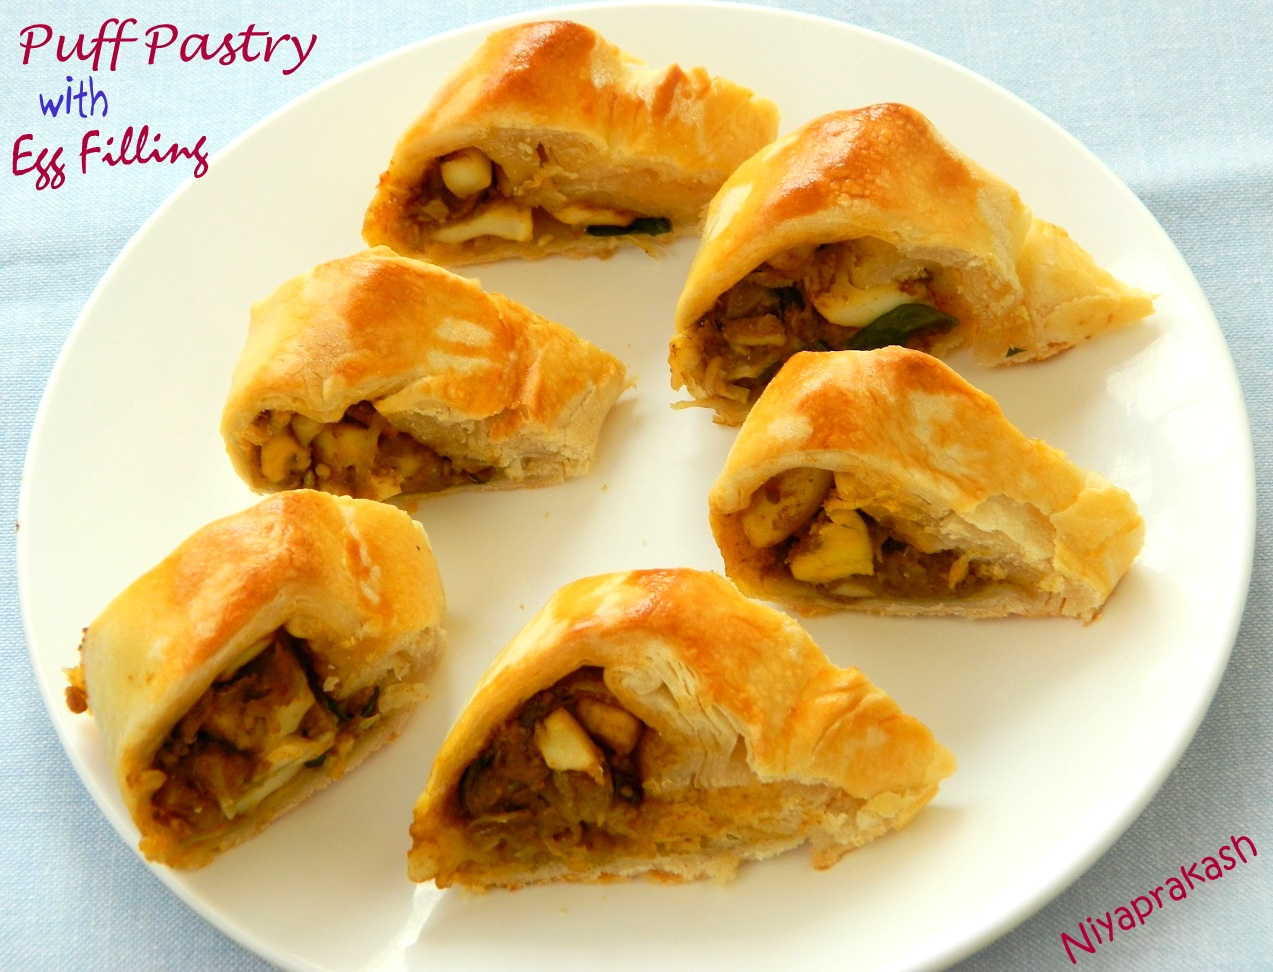 Niya's World: Puff Pastry with Egg Filling